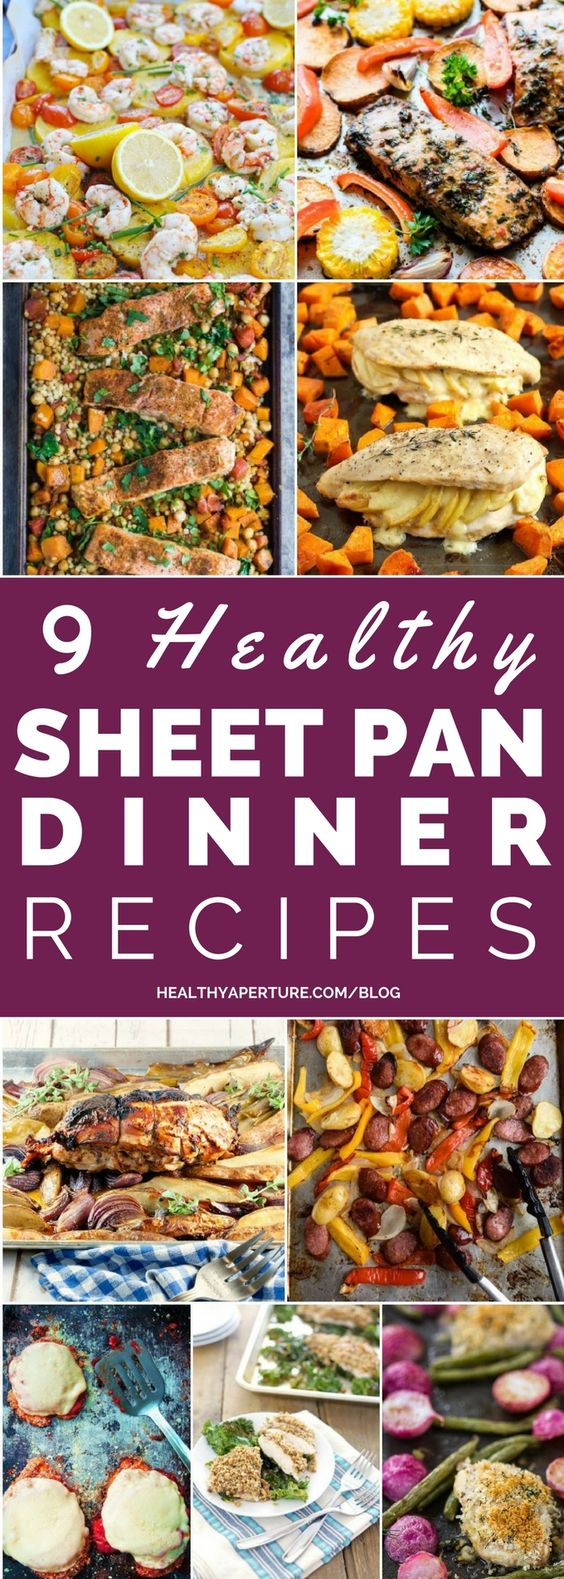 One pan dinners make cleanup a breeze! Here are 9 Healthy Sheet Pan Dinner Recipes perfect for busy nights!